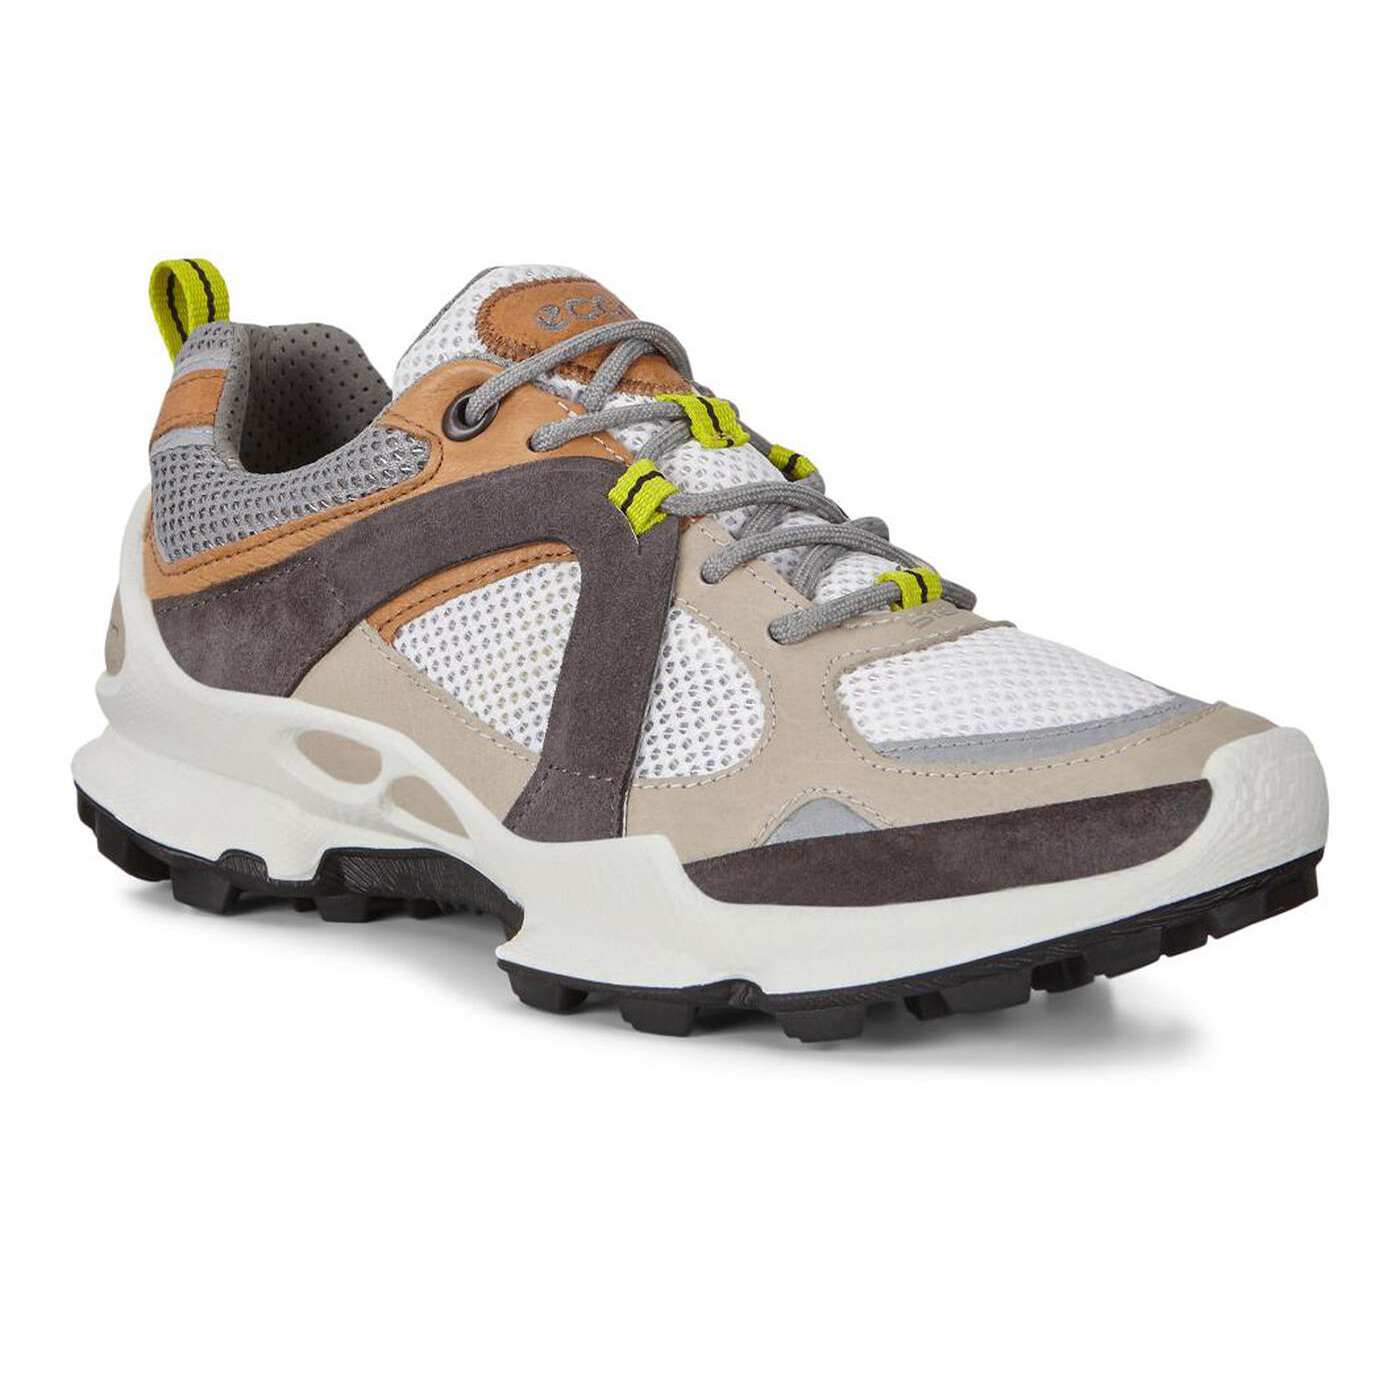 ECCO Biom C-trail Women